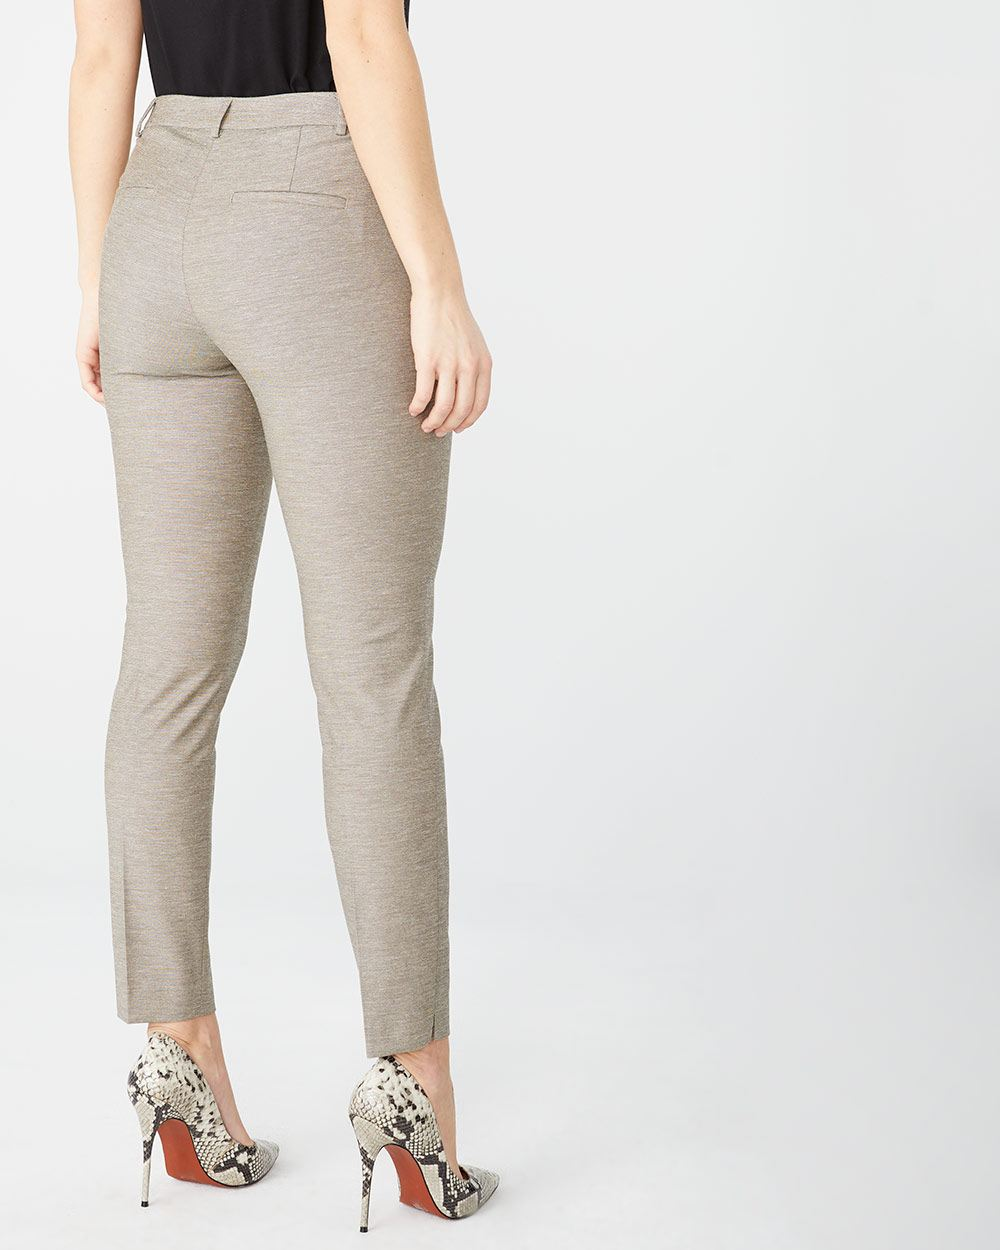 Stretch linen-blend Signature fit Slim Leg ankle pant